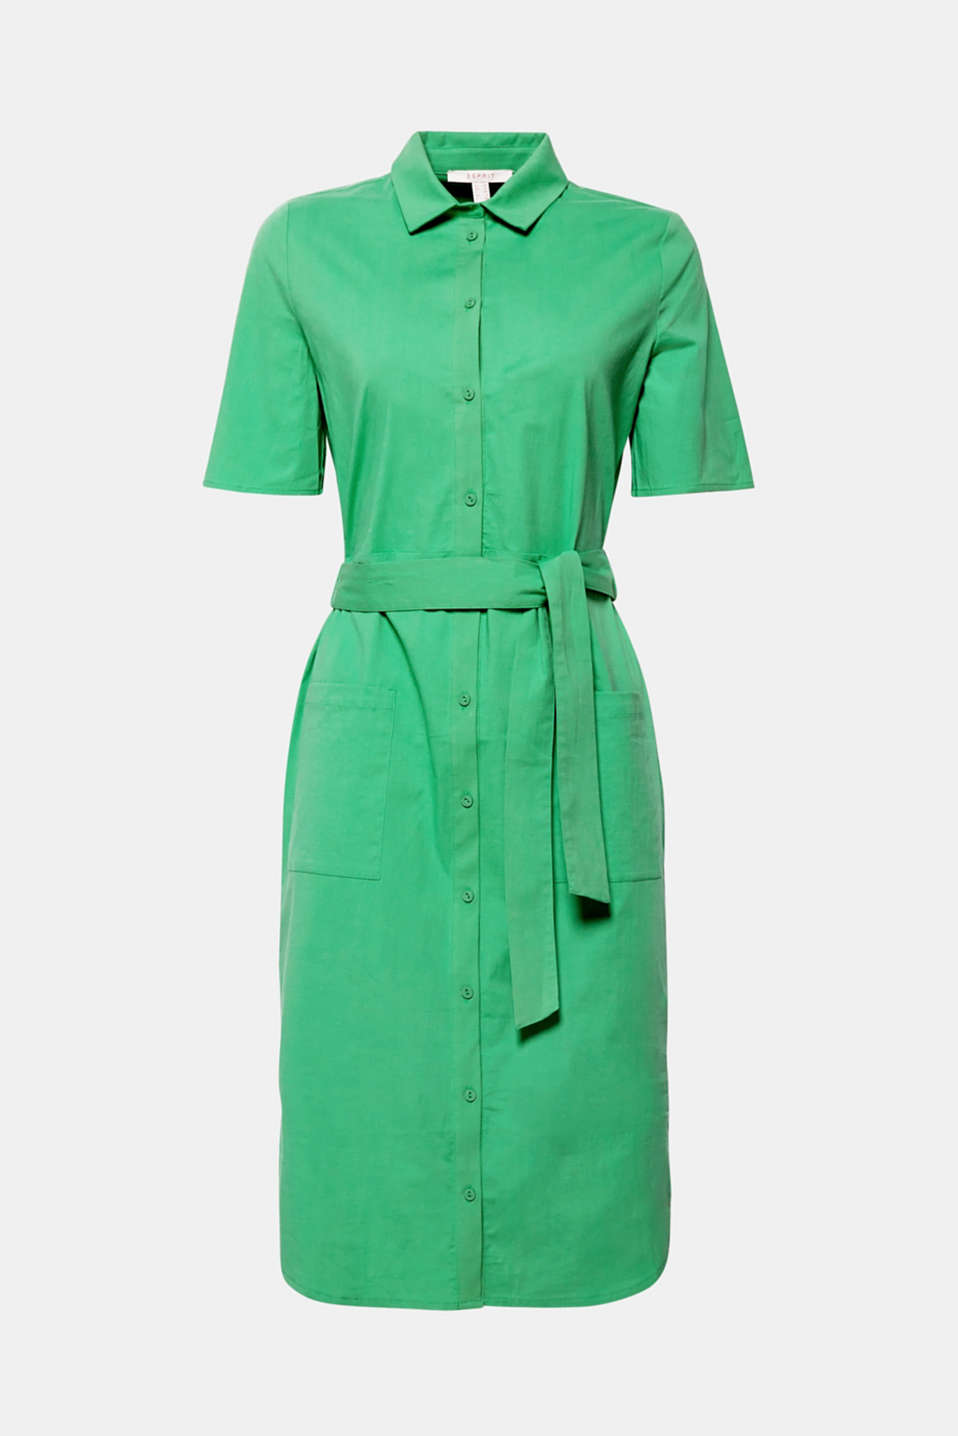 The casual, elegant look and comfortable stretch cotton fabric make this shirt dress the perfect go-to piece for everyday outfits or for work.